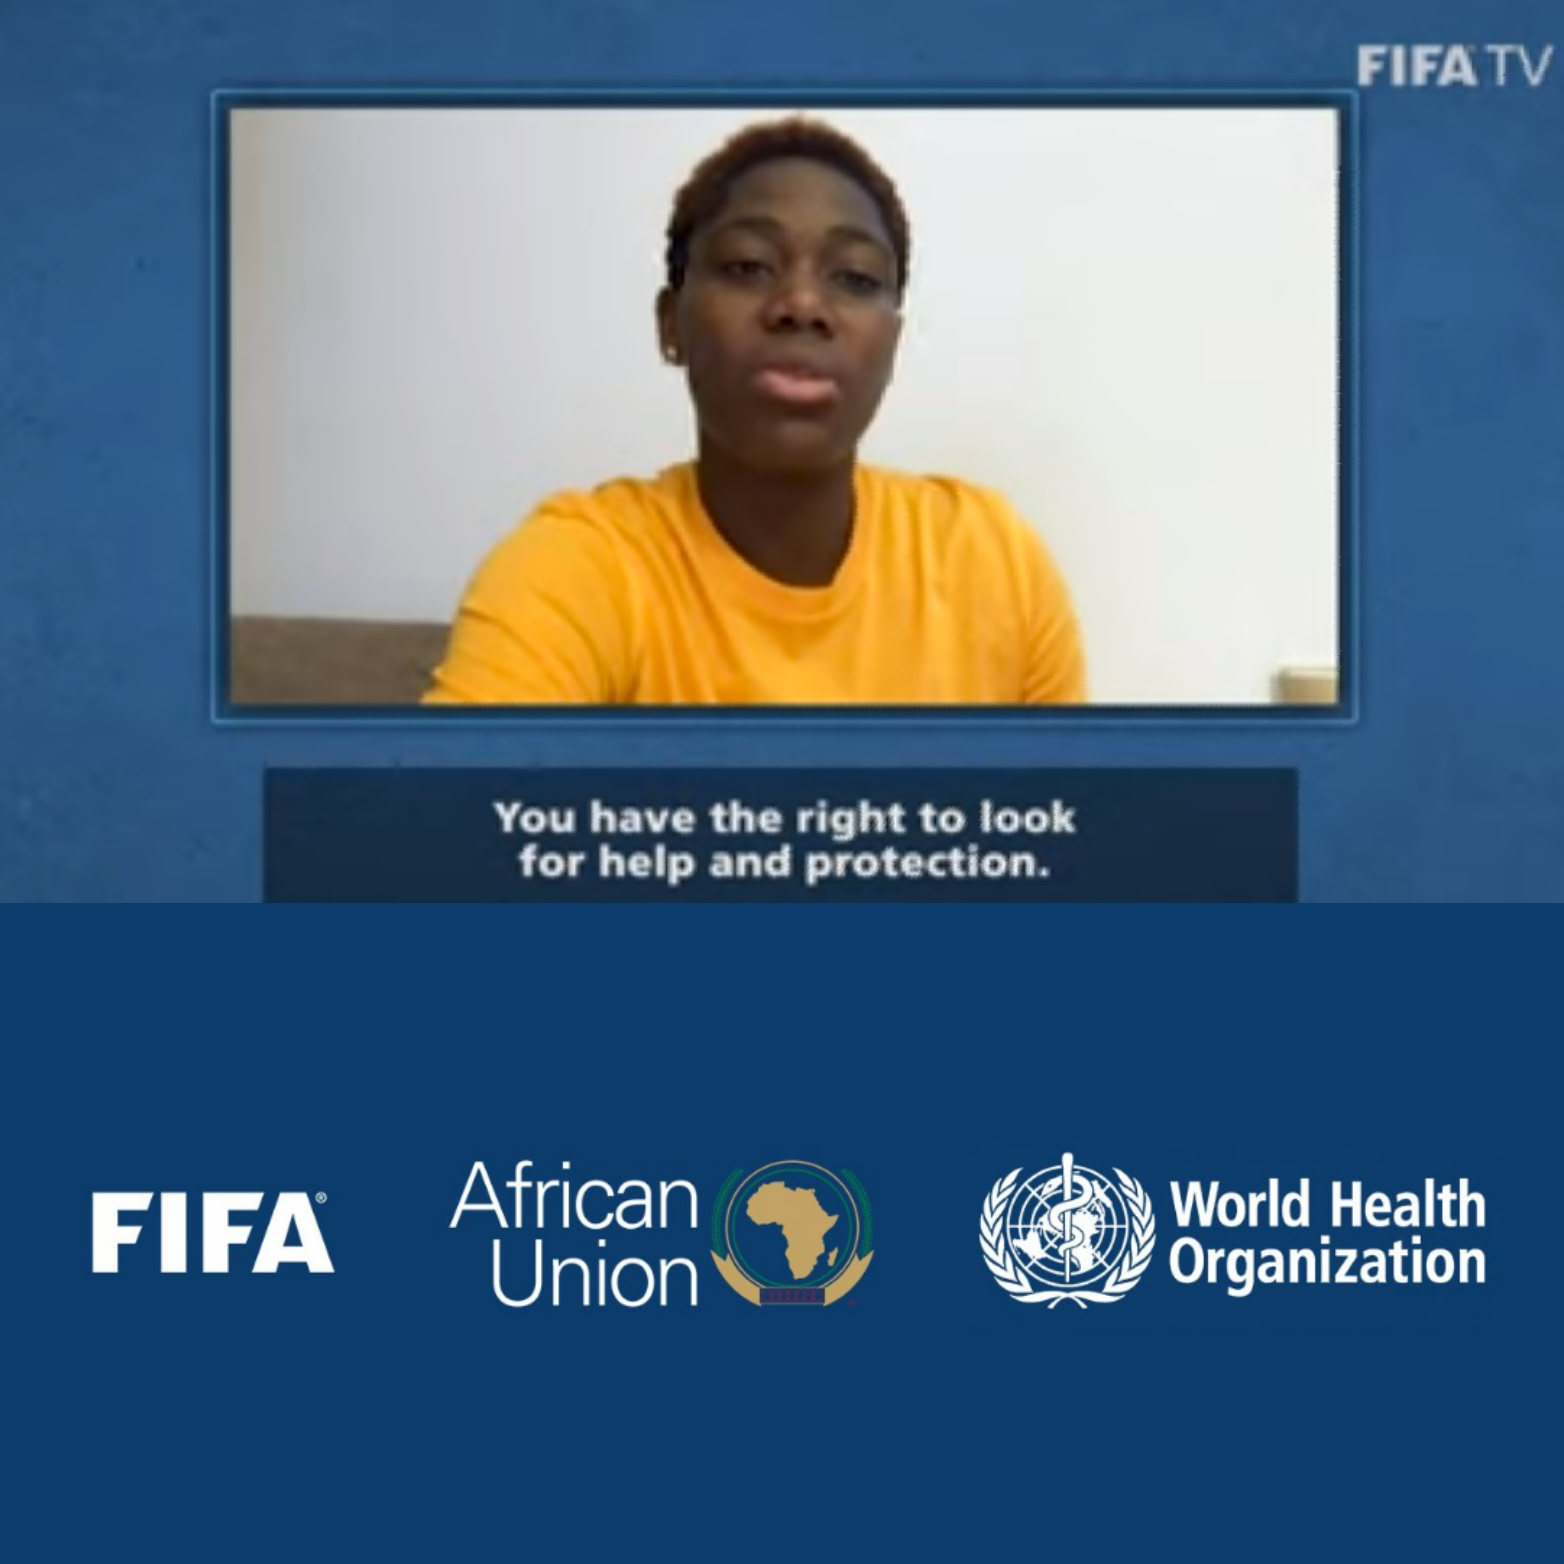 FIFA Teams Up With AU, WHO, CAF; Launches #SafeHome Campaign Against Domestic Violence In Africa